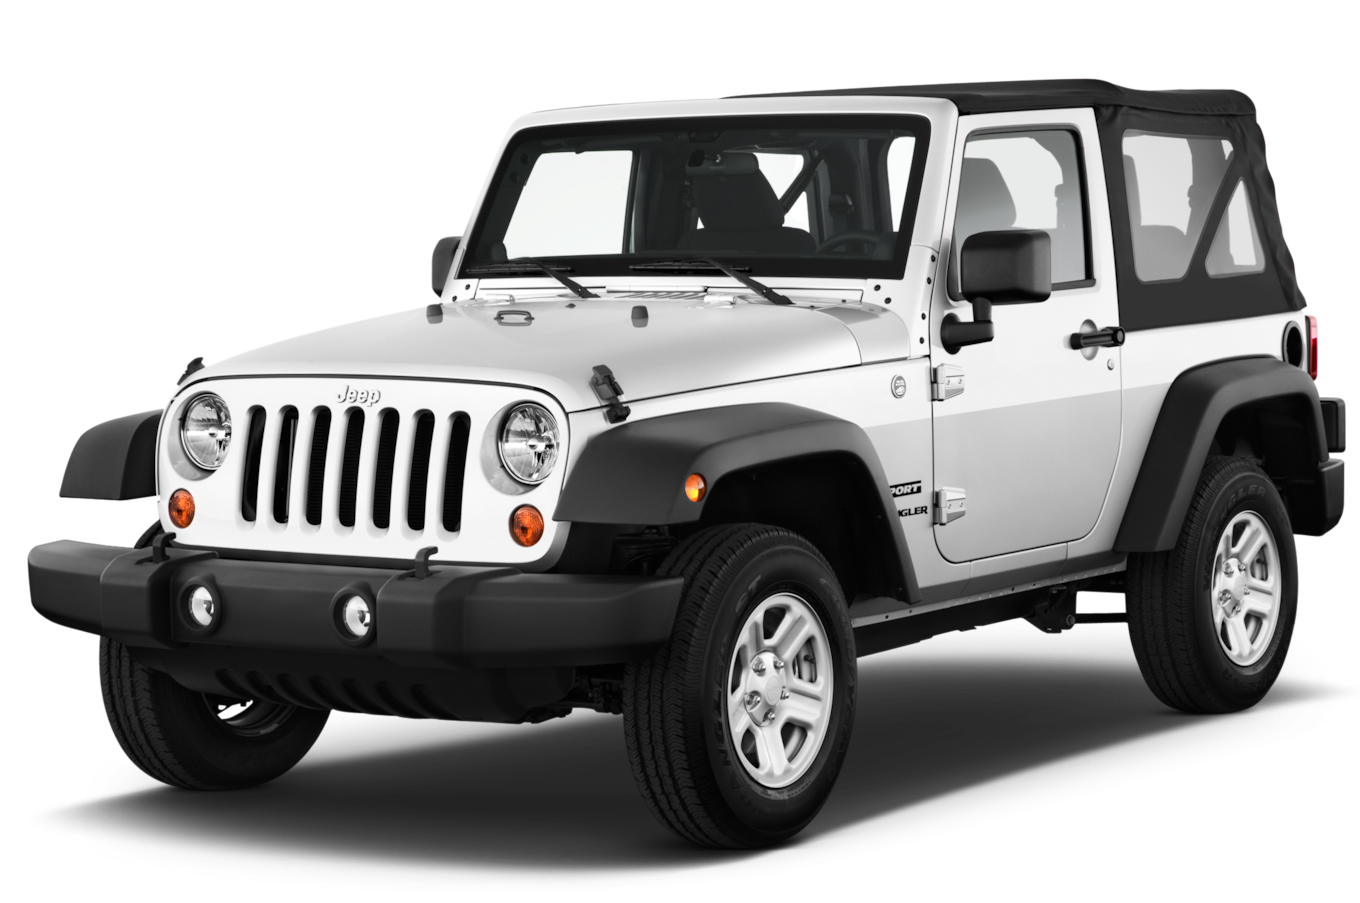 jeep wrangler reviews and rating motor trend #22781